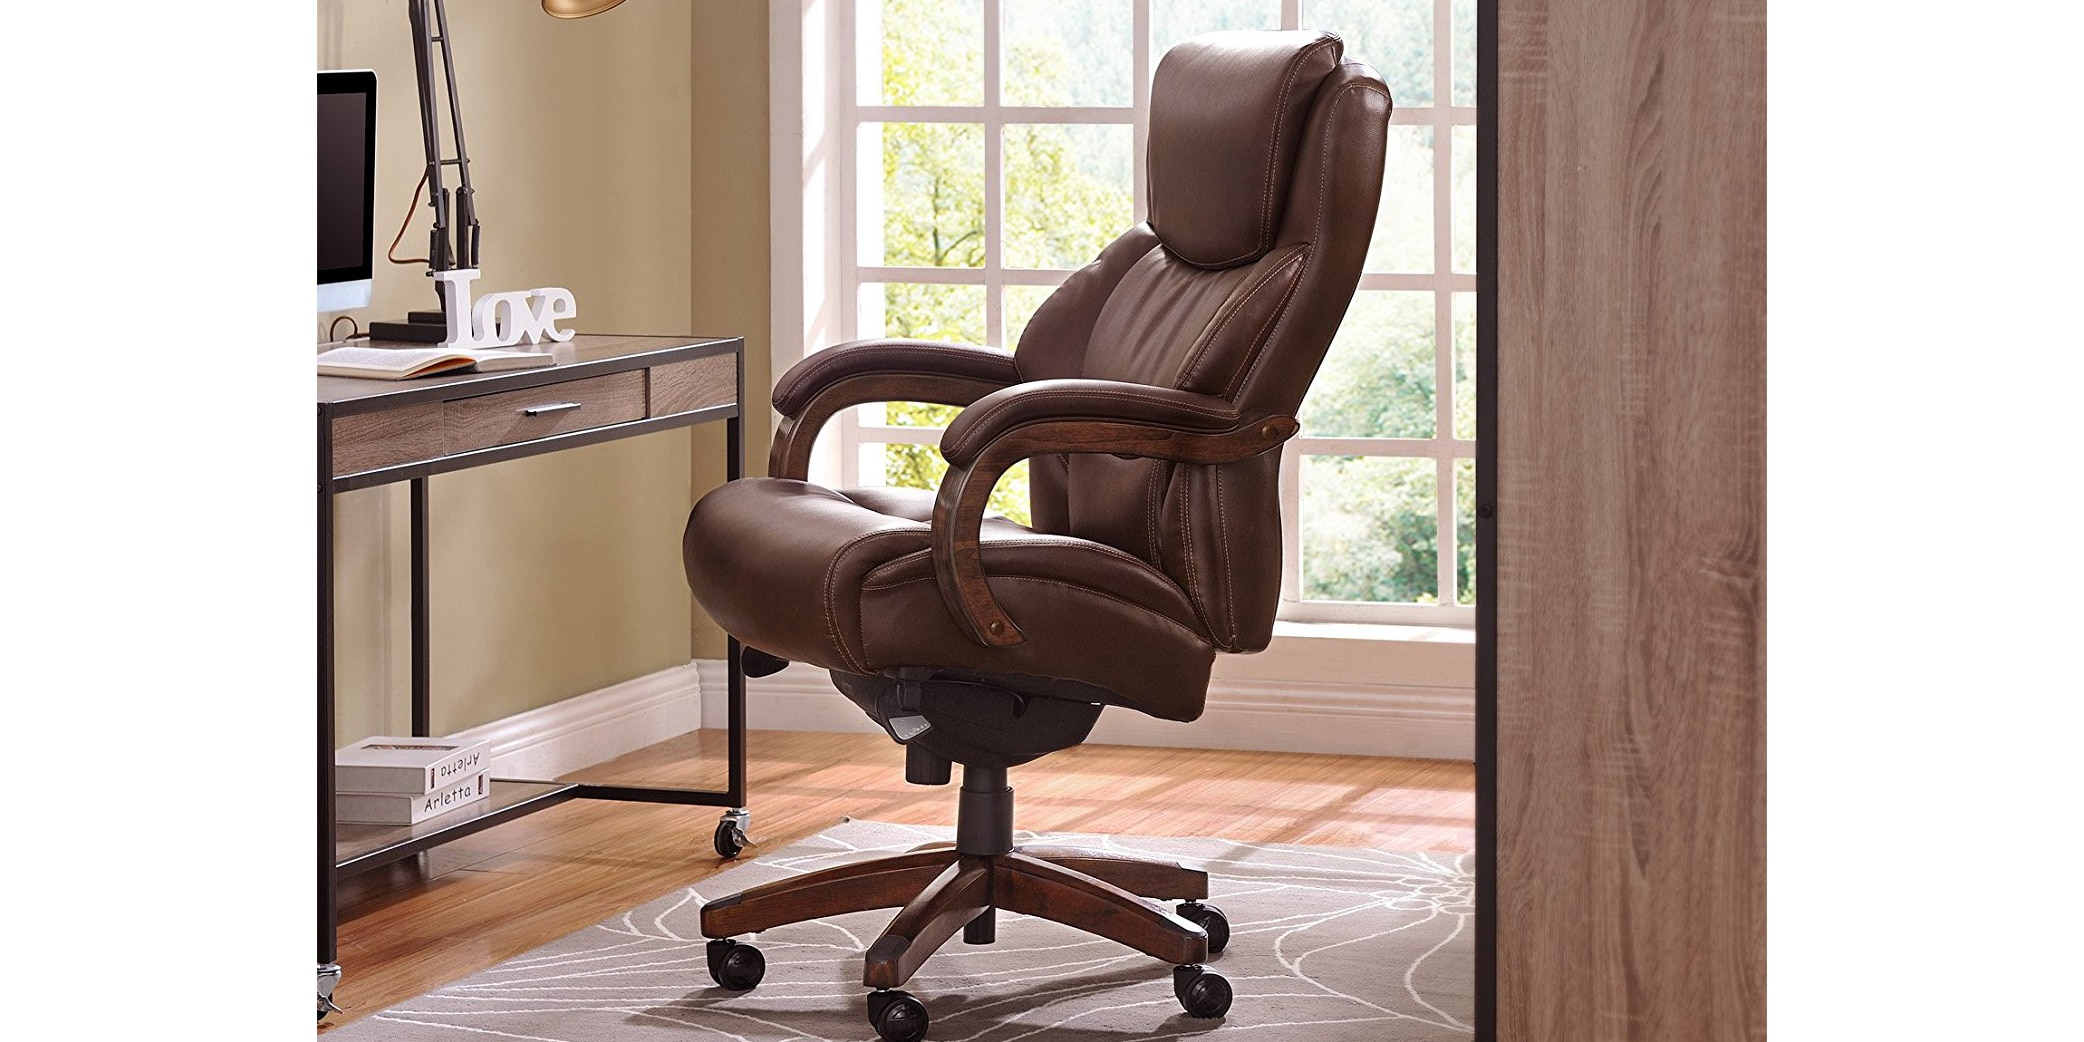 Top 10 Best Executive Chairs In 2021, Best Executive Desk Chair 2021